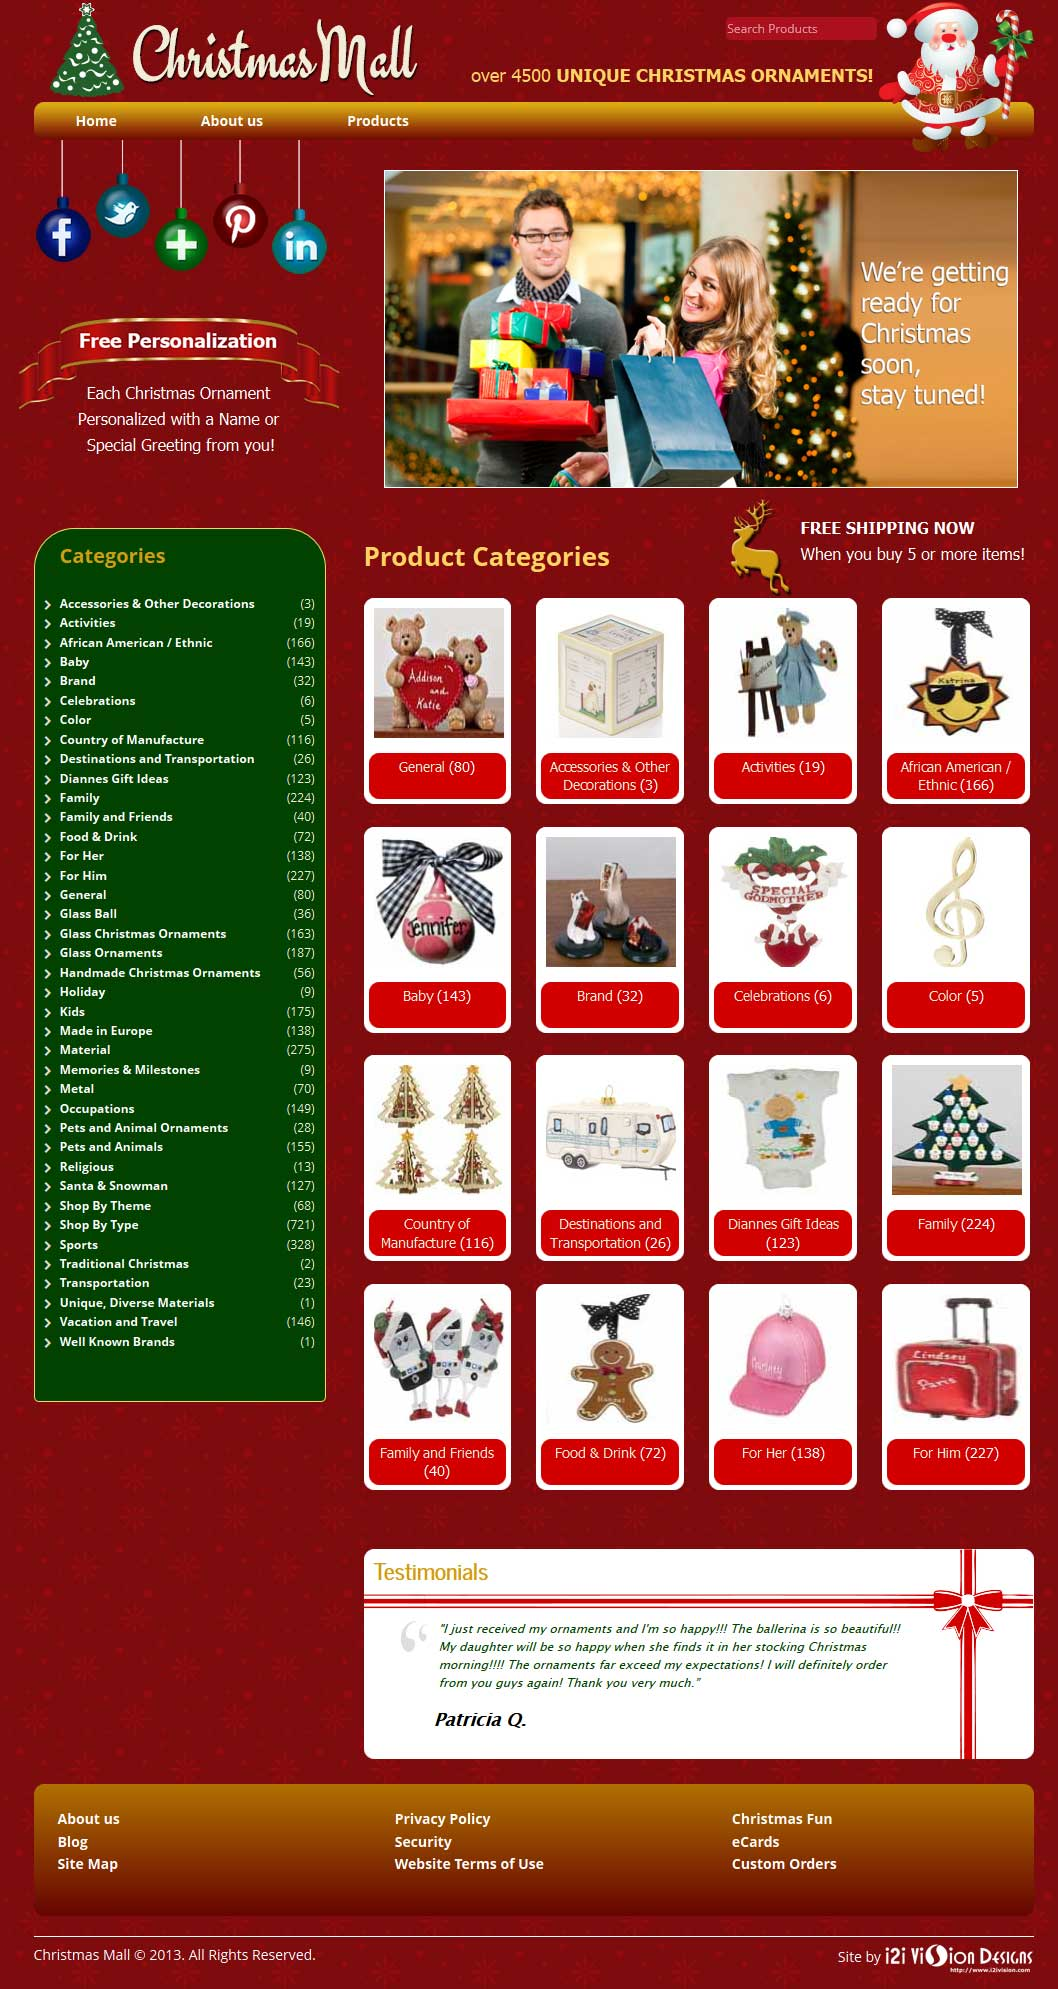 Christmas Mall website